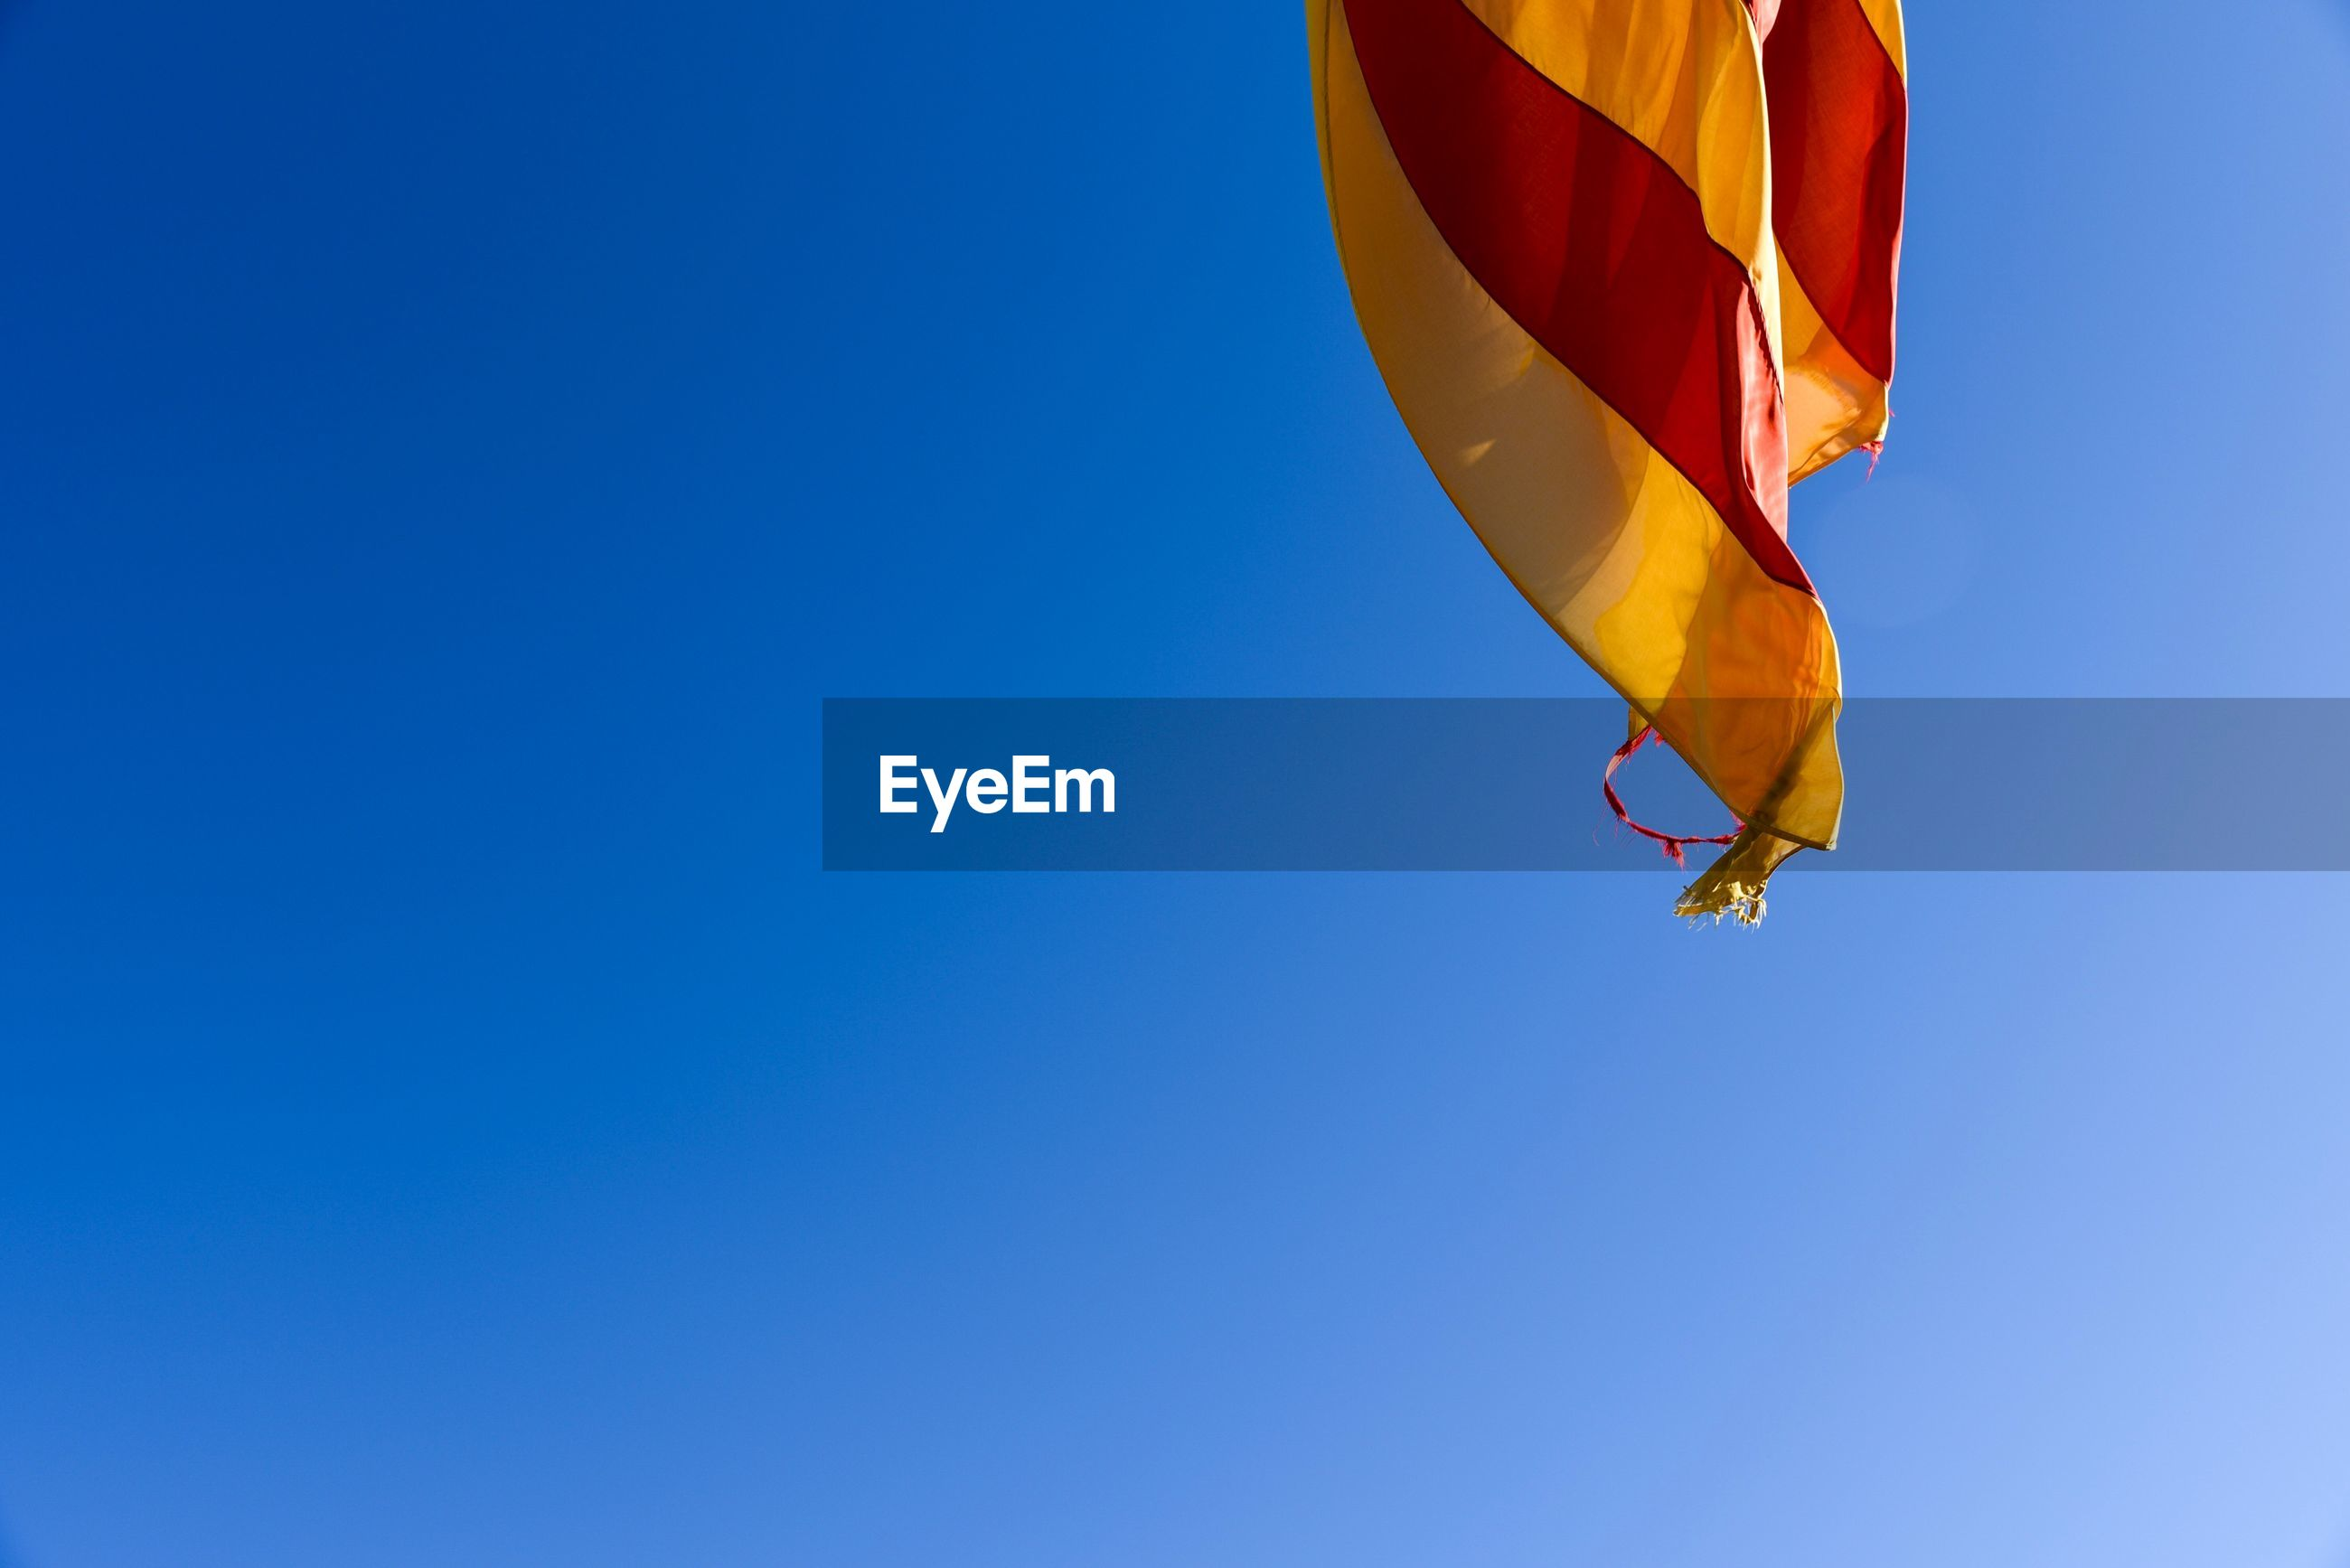 Low angle view of catalunya flag against clear blue sky